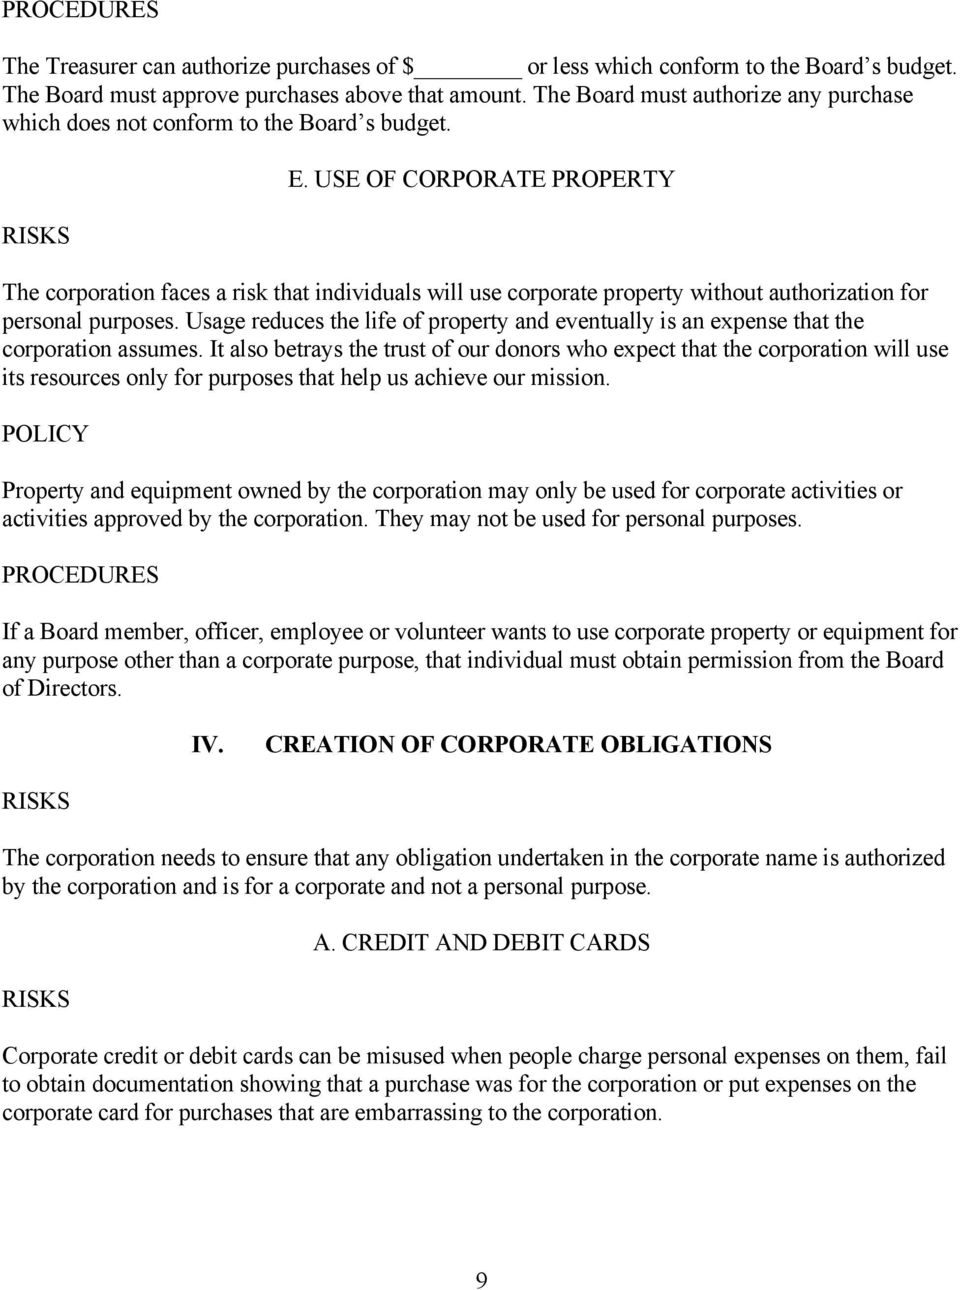 USE OF CORPORATE PROPERTY The corporation faces a risk that individuals will use corporate property without authorization for personal purposes.